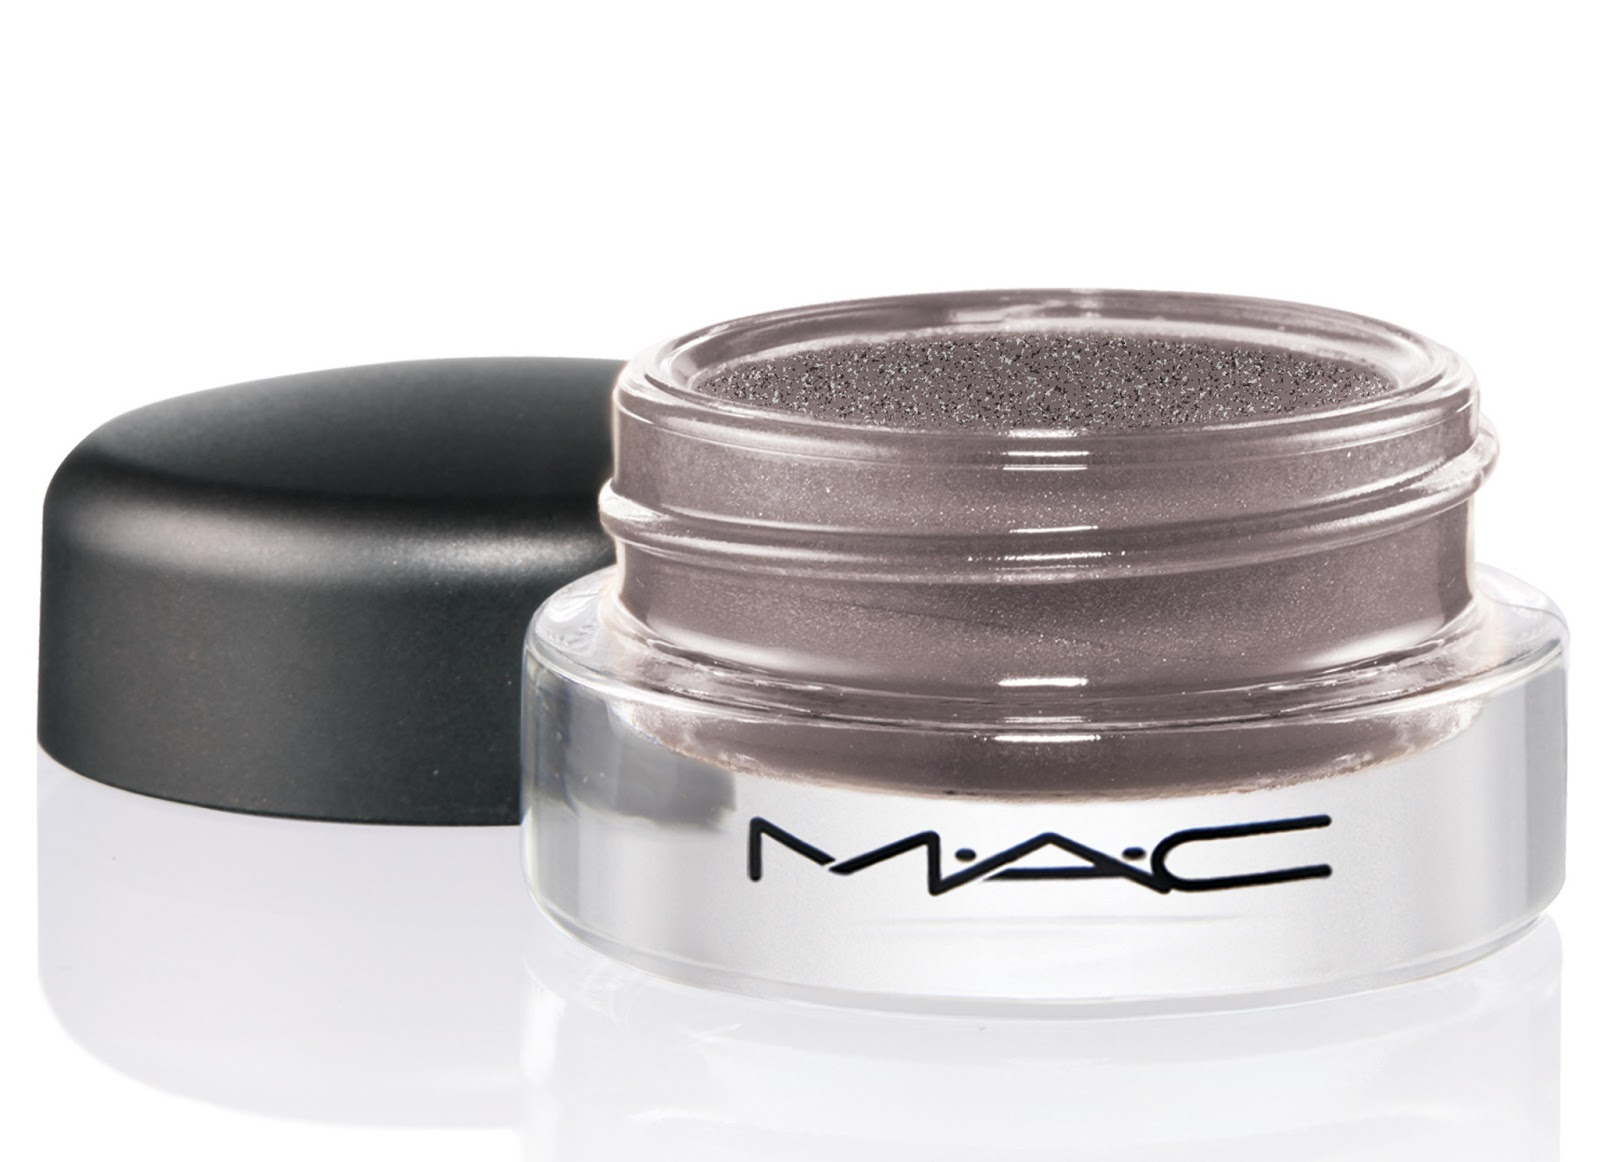 the alchemist mac pro longwear paint pots